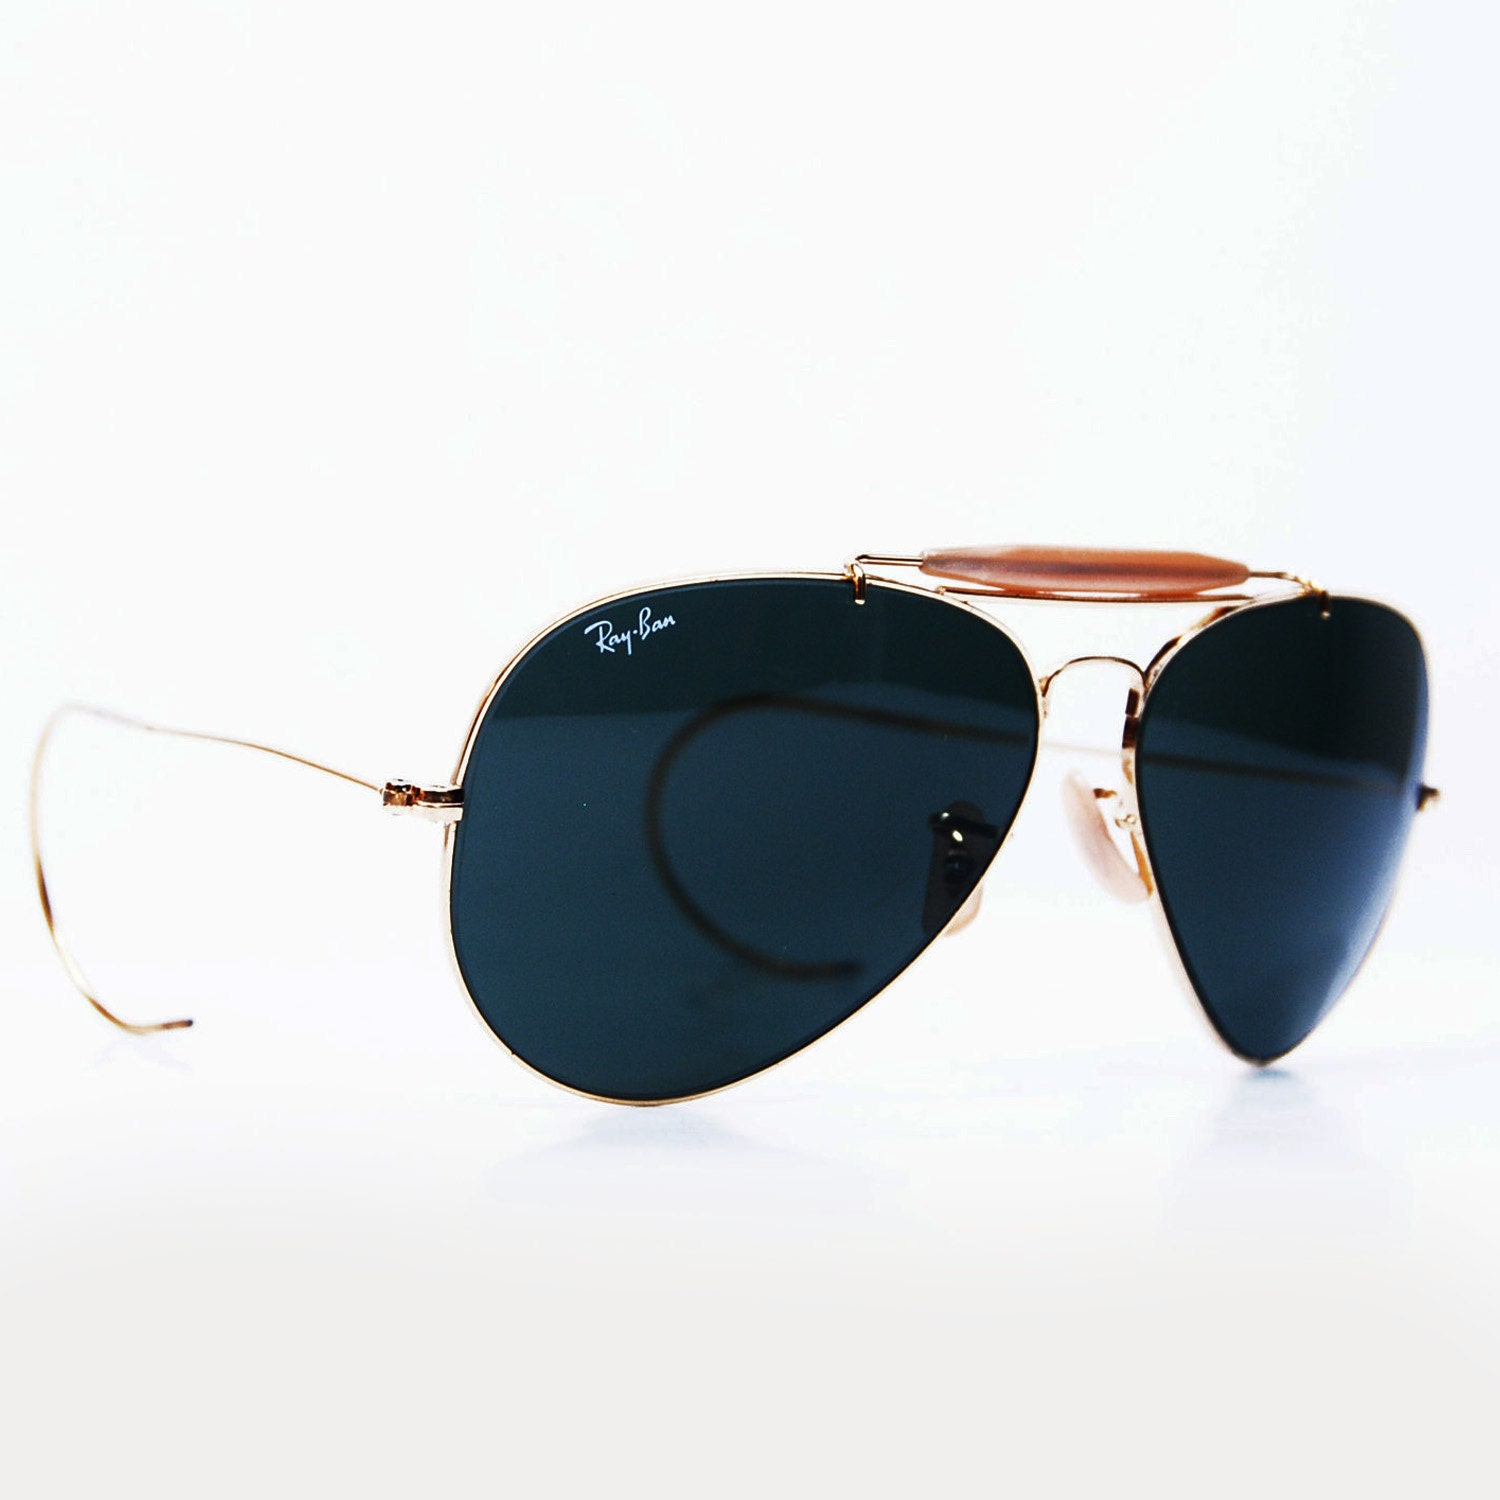 296dfc1662 Ray Ban Bausch   Lomb Leather Aviator